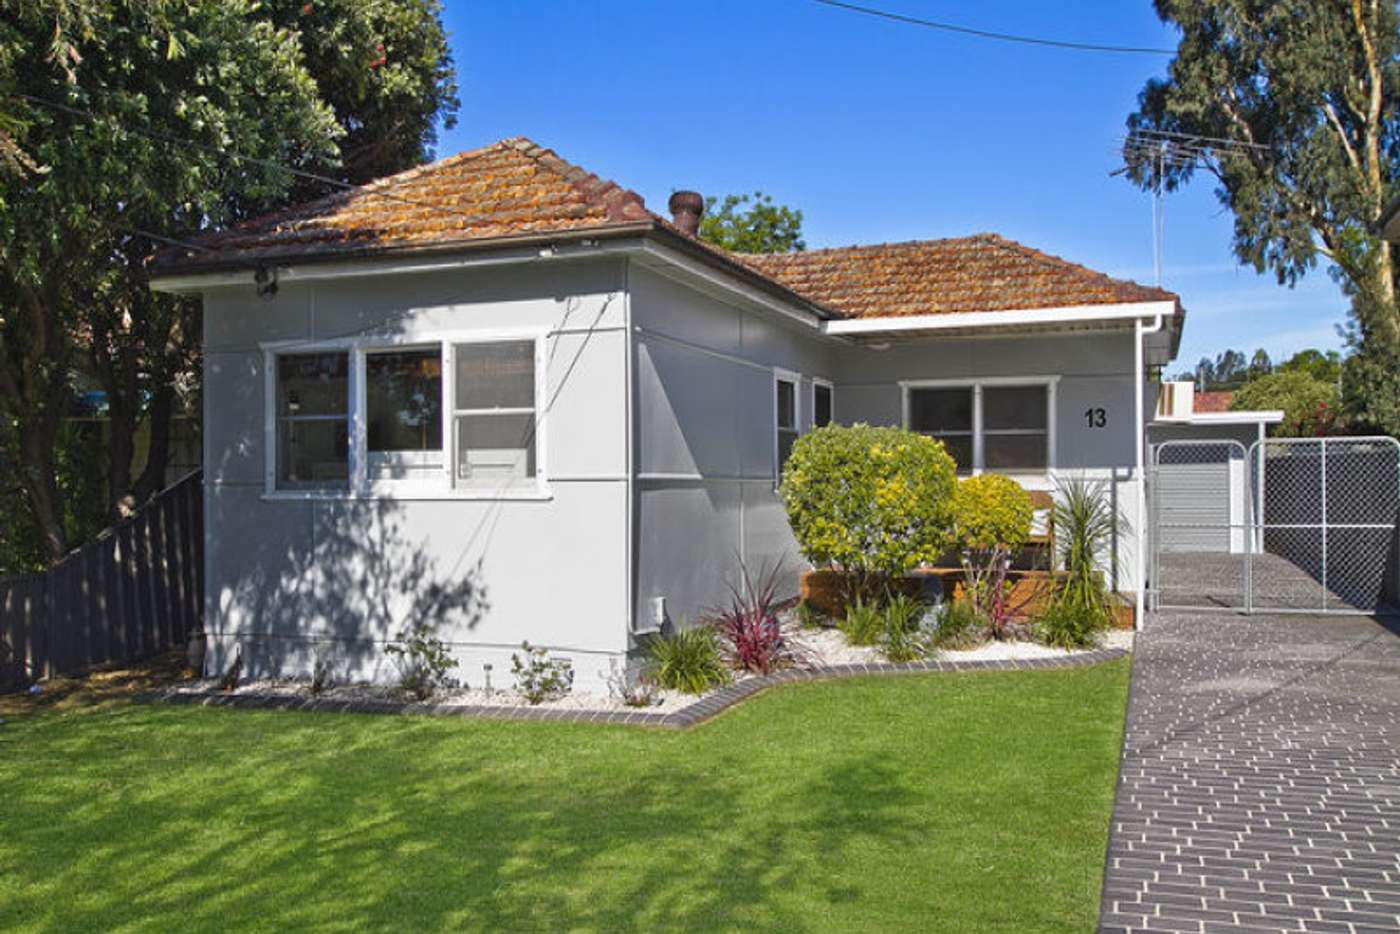 Main view of Homely house listing, 13 Alan Street, Yagoona NSW 2199